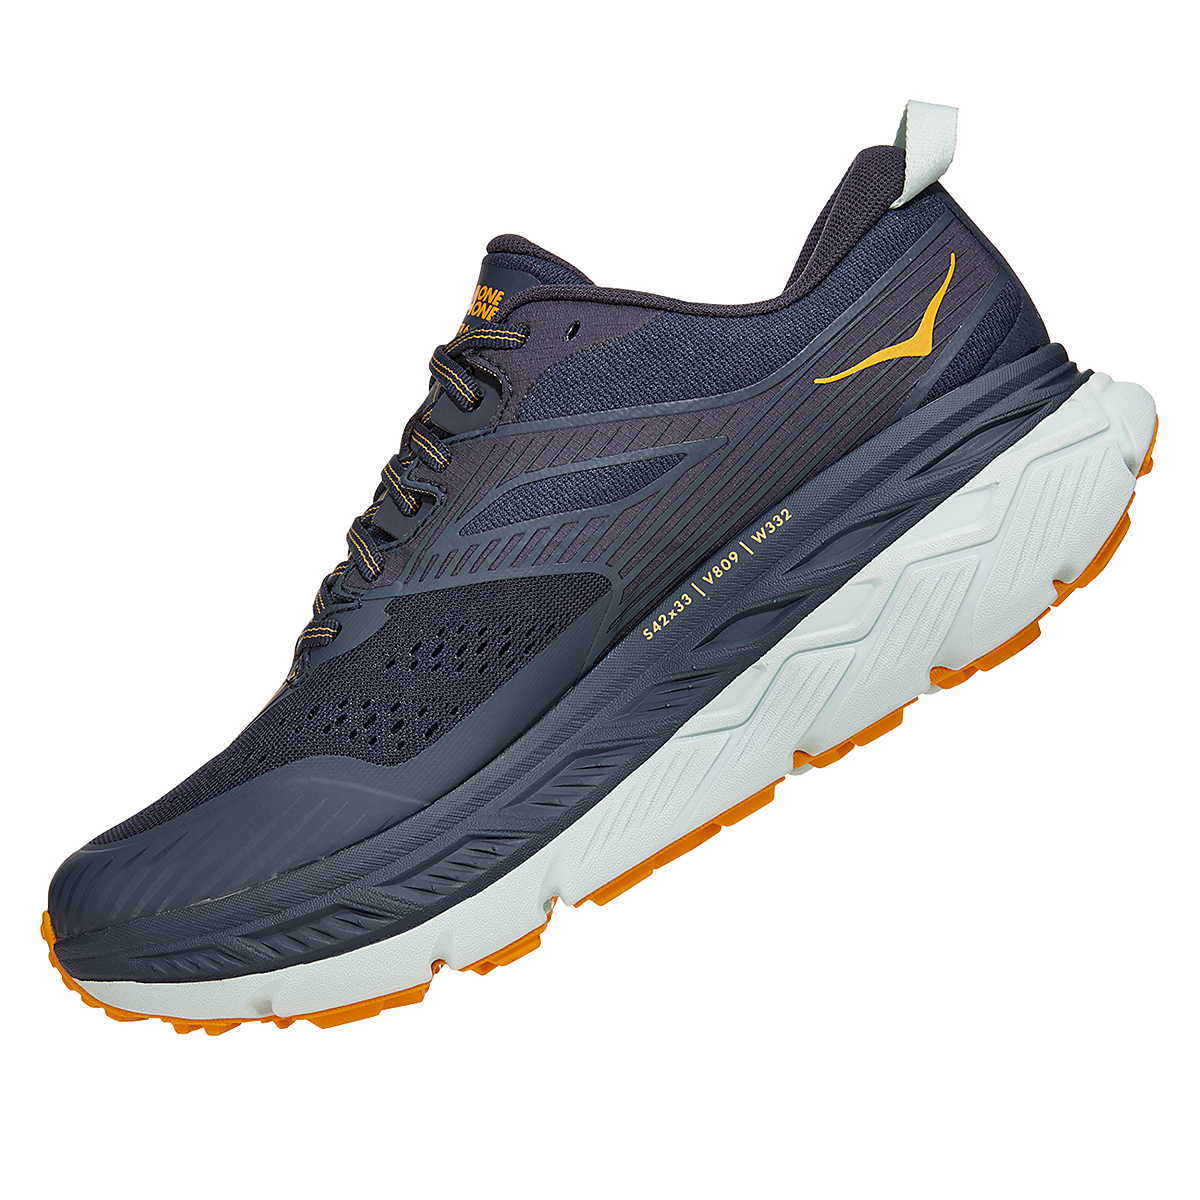 Men's Hoka One One Stinson Atr 6 Trail Running Shoe - Color: Ombre Blue - Size: 7 - Width: Regular, Ombre Blue, large, image 4